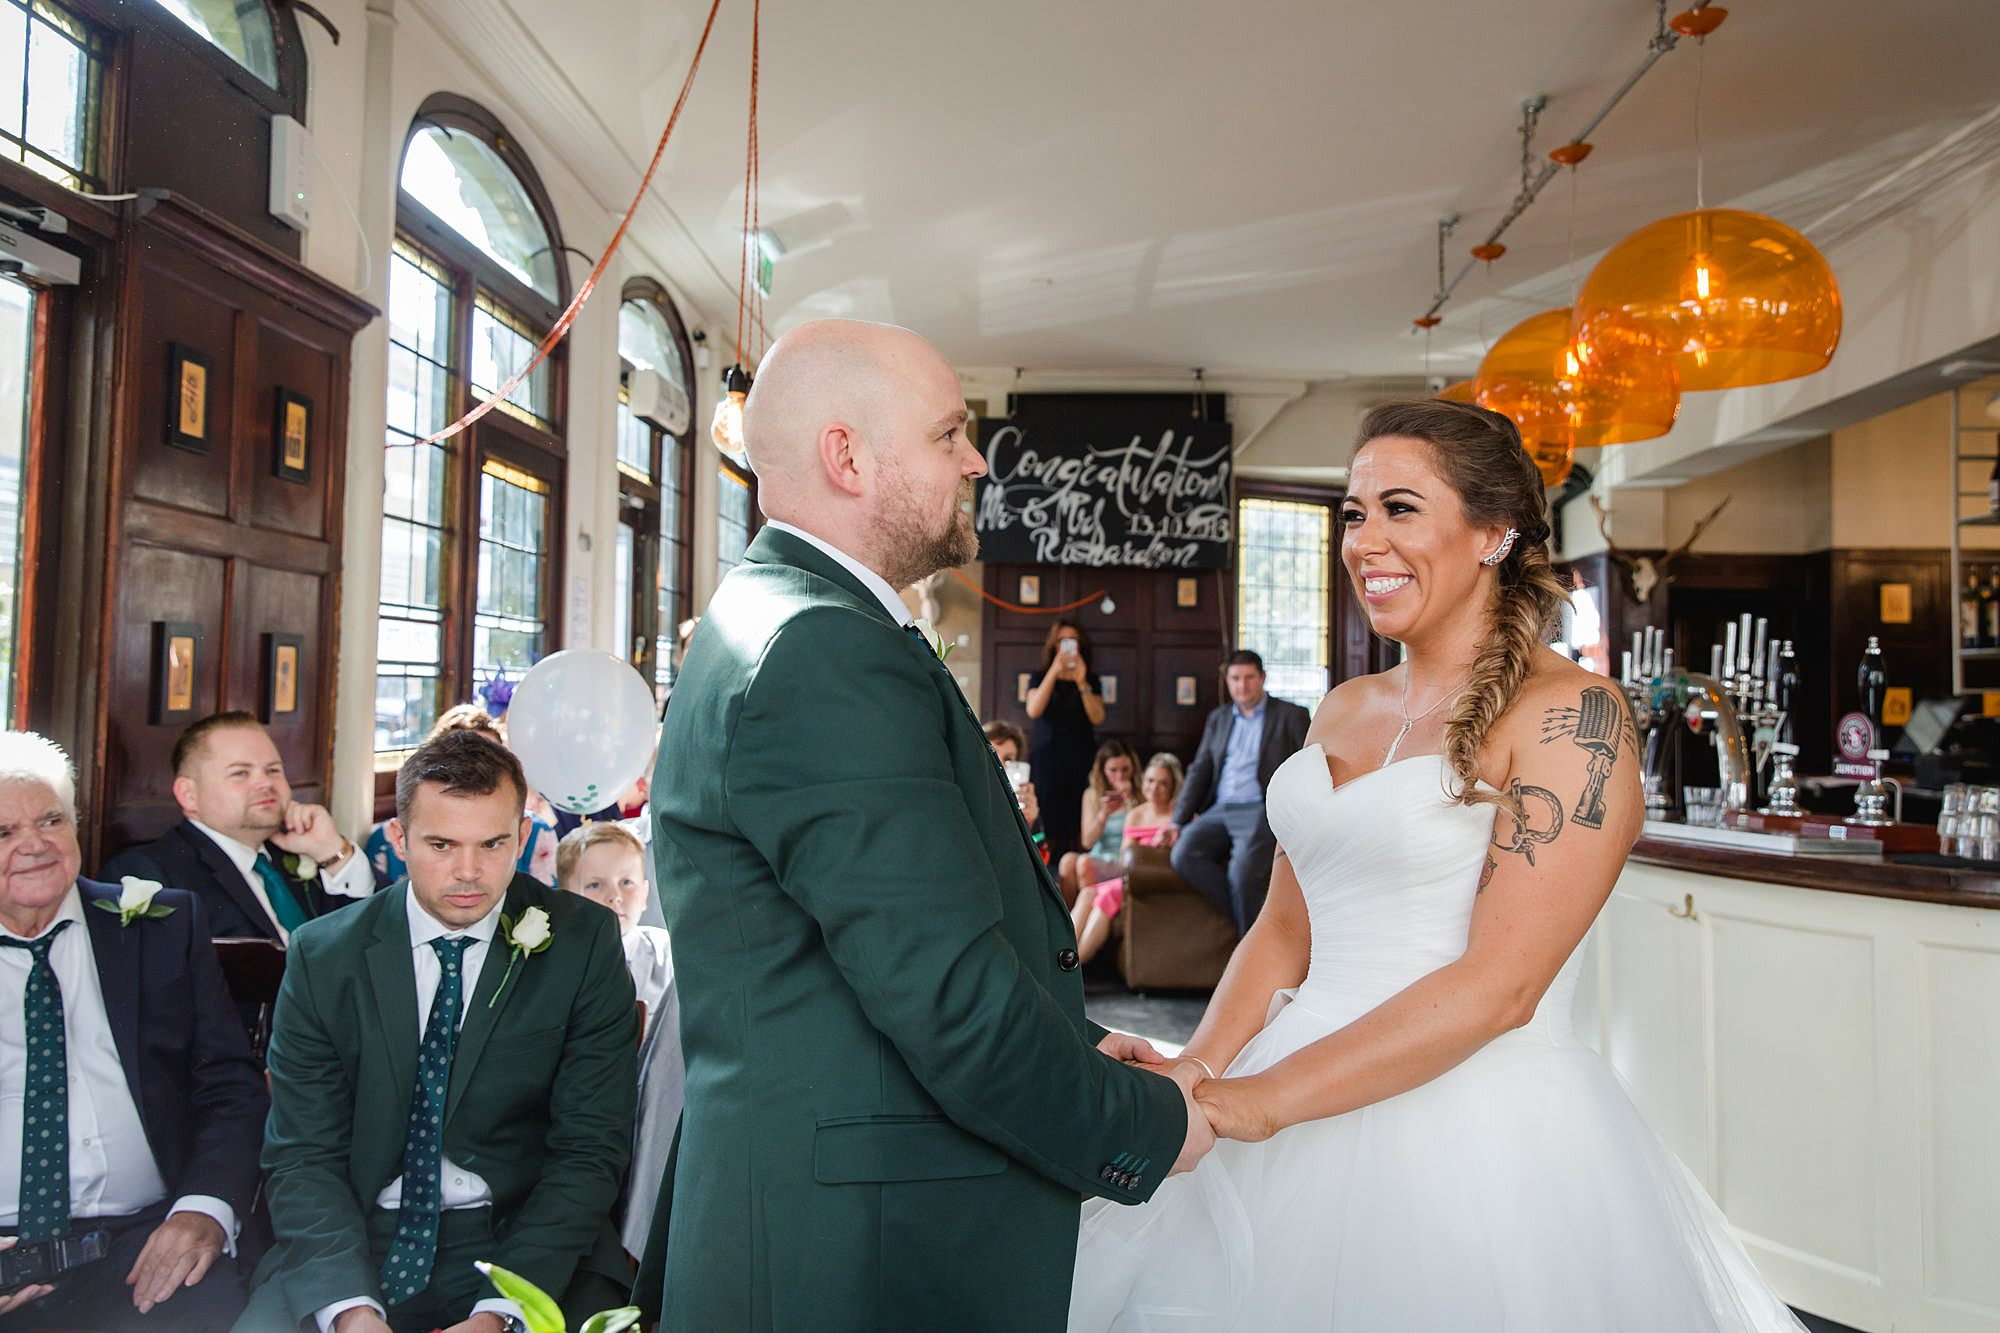 Prince albert camden wedding bride and groom exchange vows